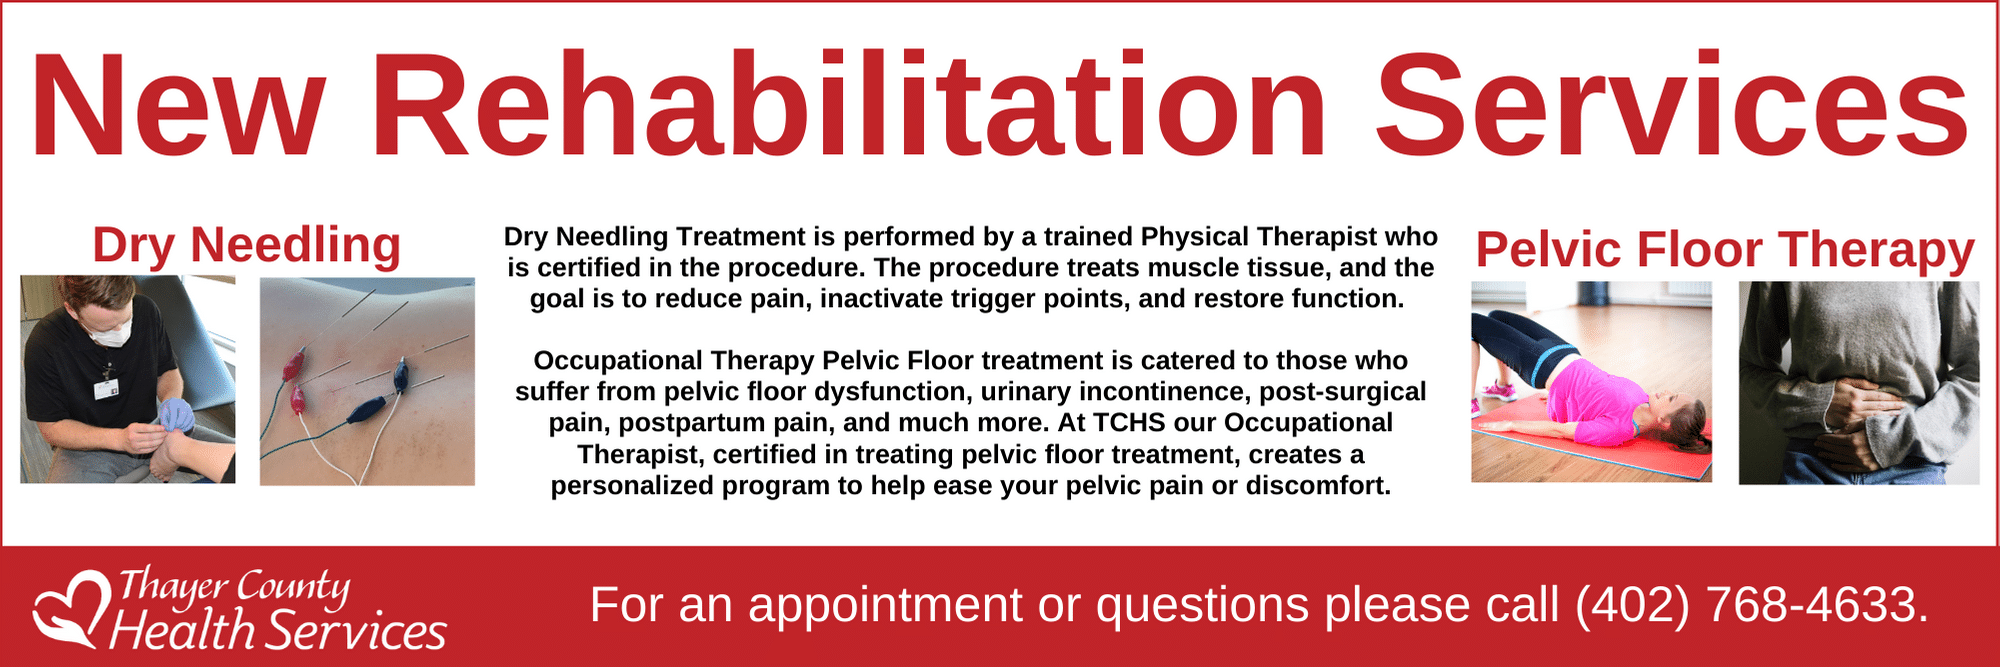 New Rehab Services